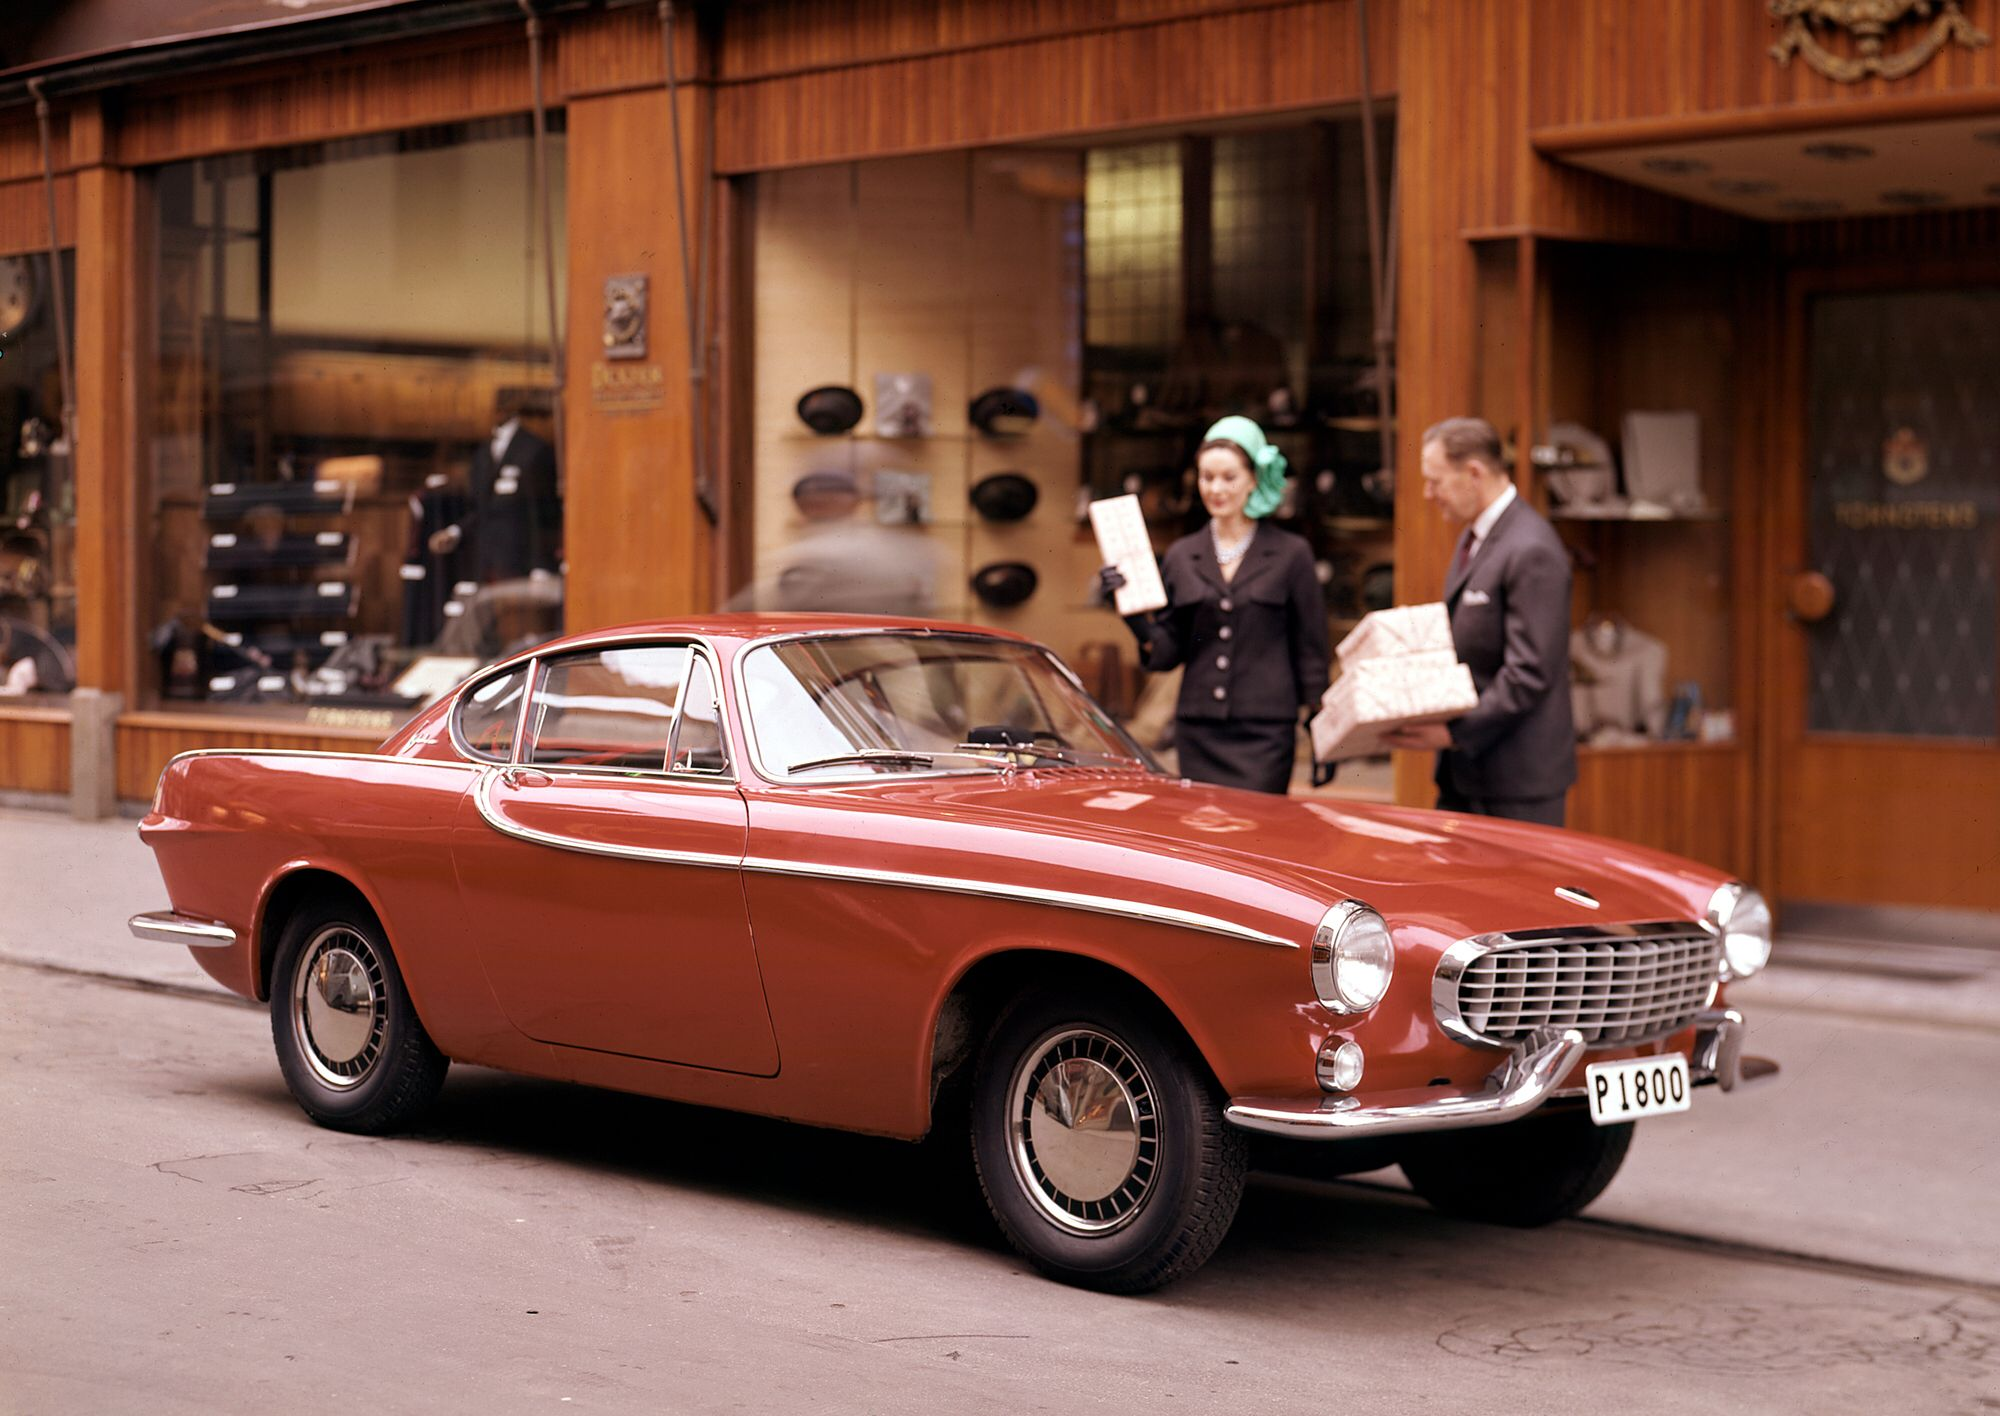 Valentines throwback: Volvo P1800, year 1960. | cars | Pinterest | Volvo, Volvo cars and Cars